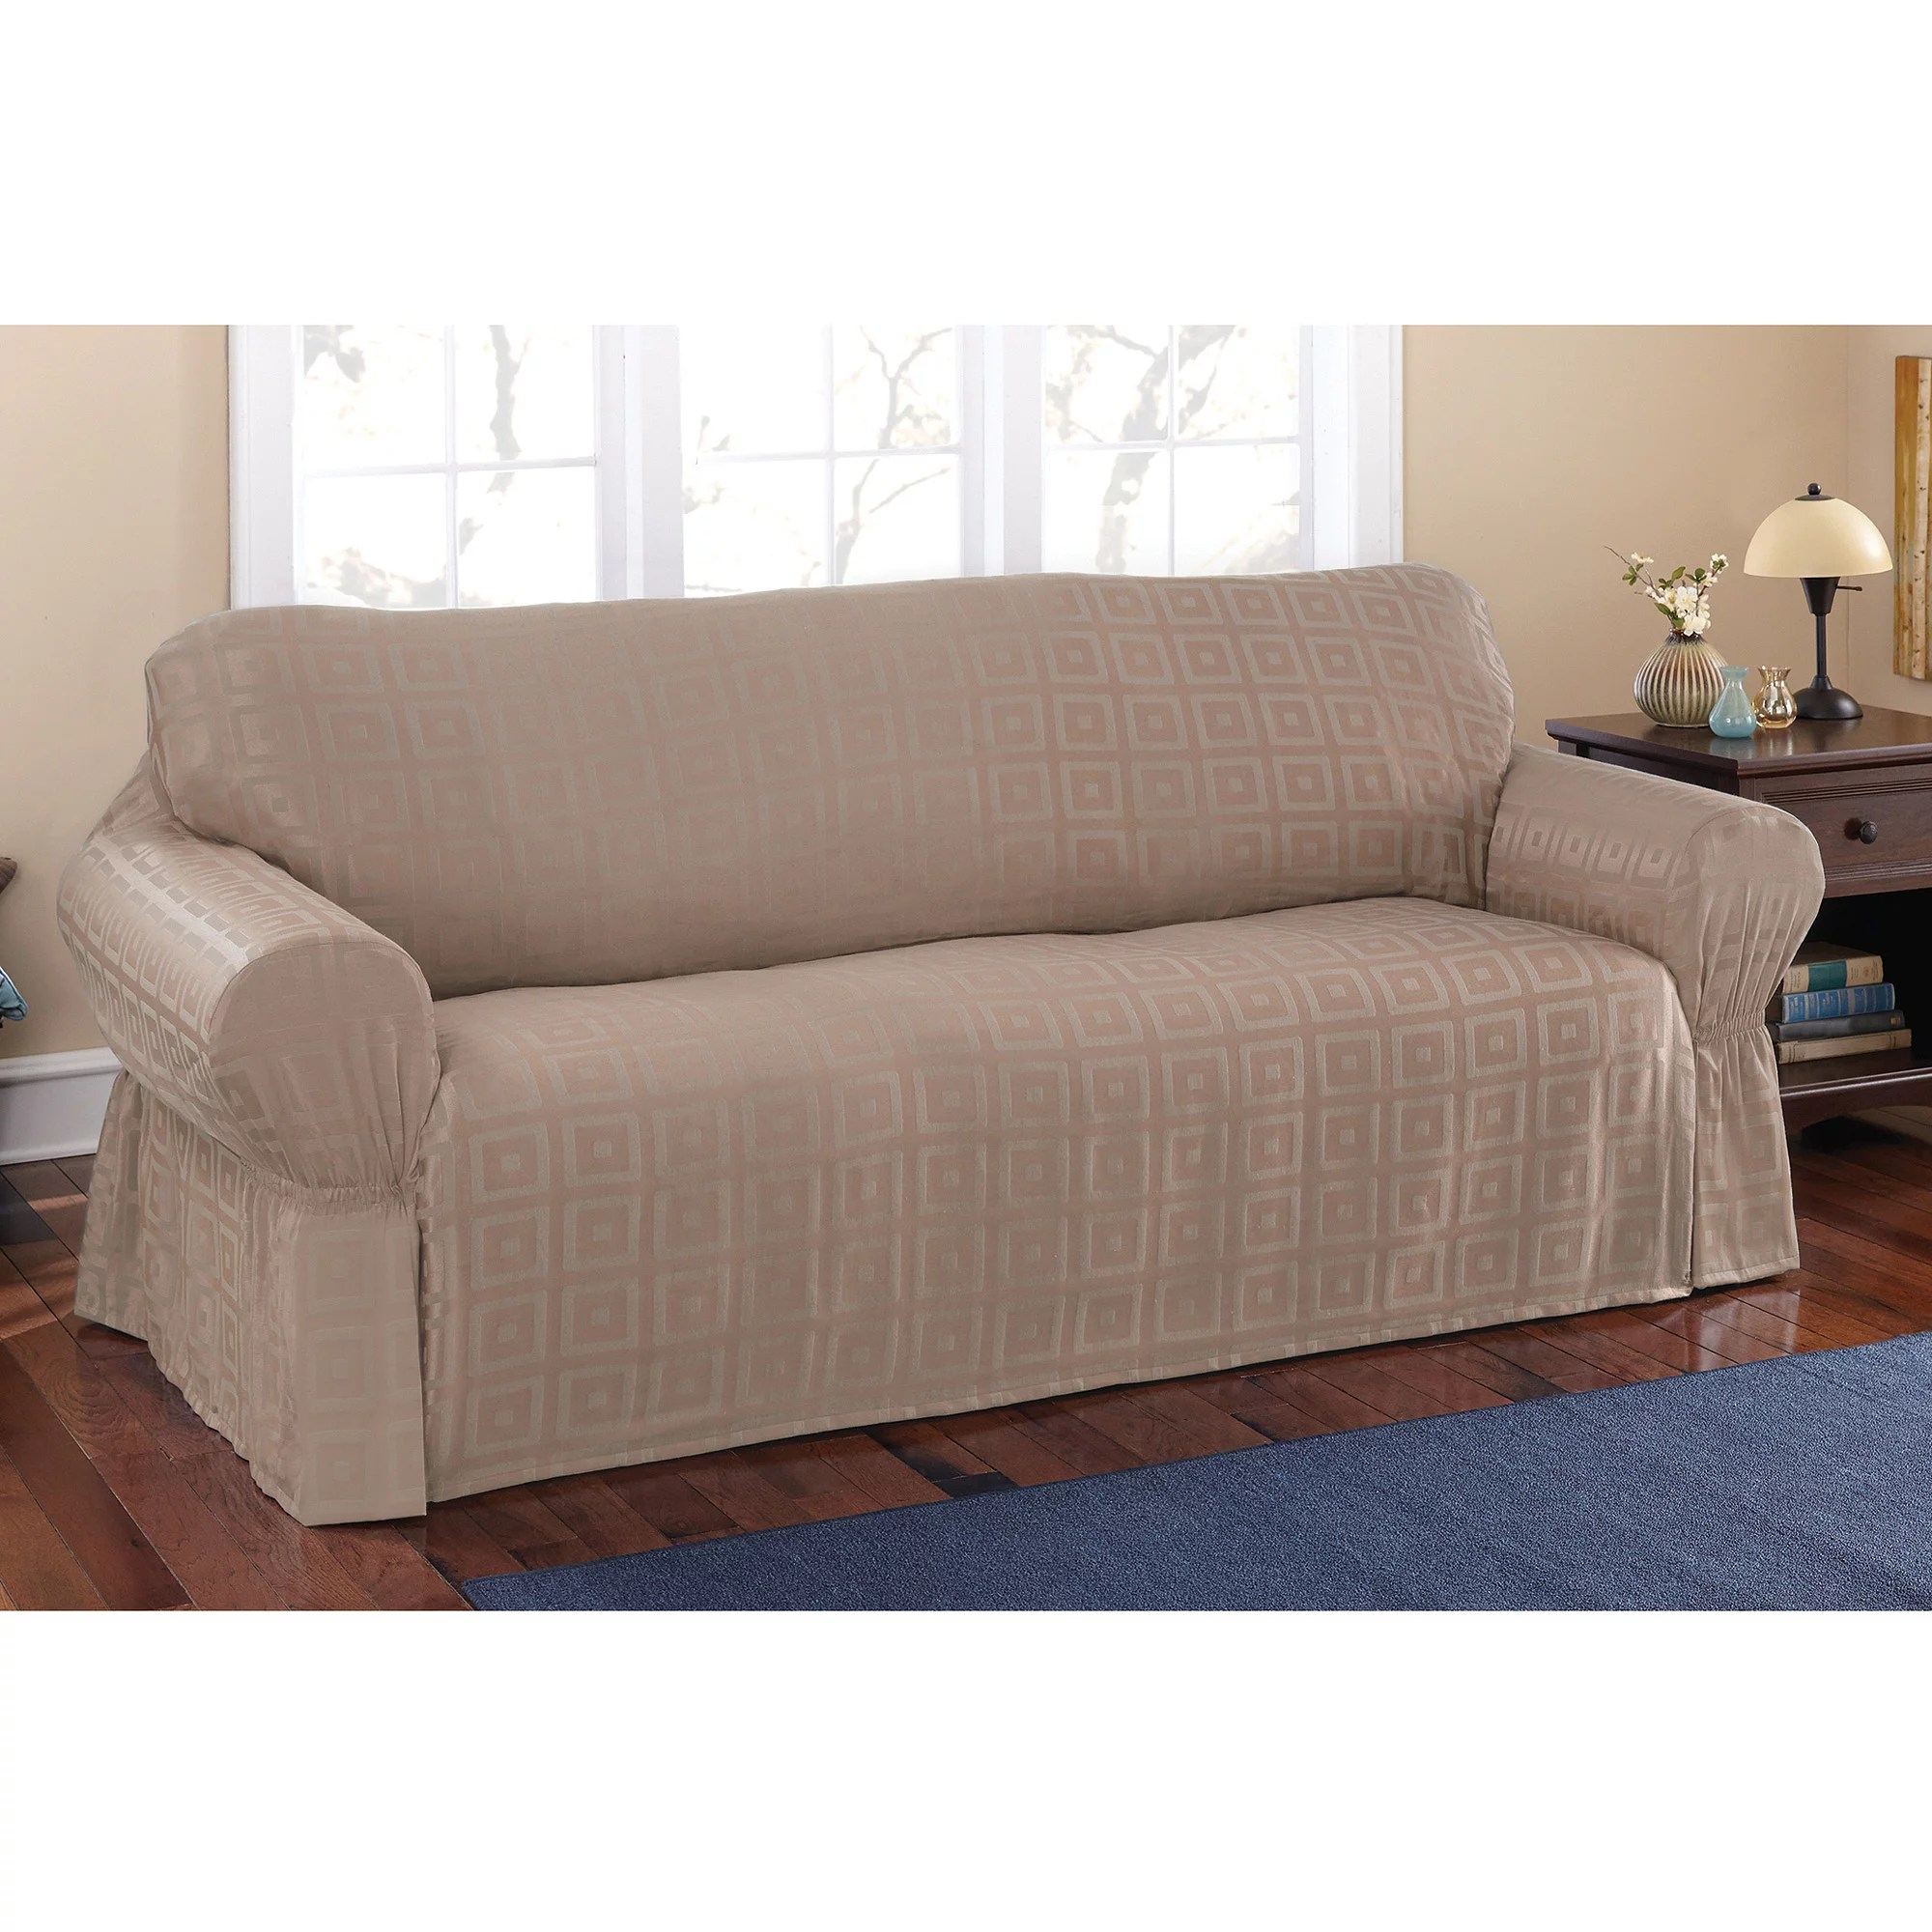 Sofa Slipcovers Mainstays Sherwood Slipcover Sofa